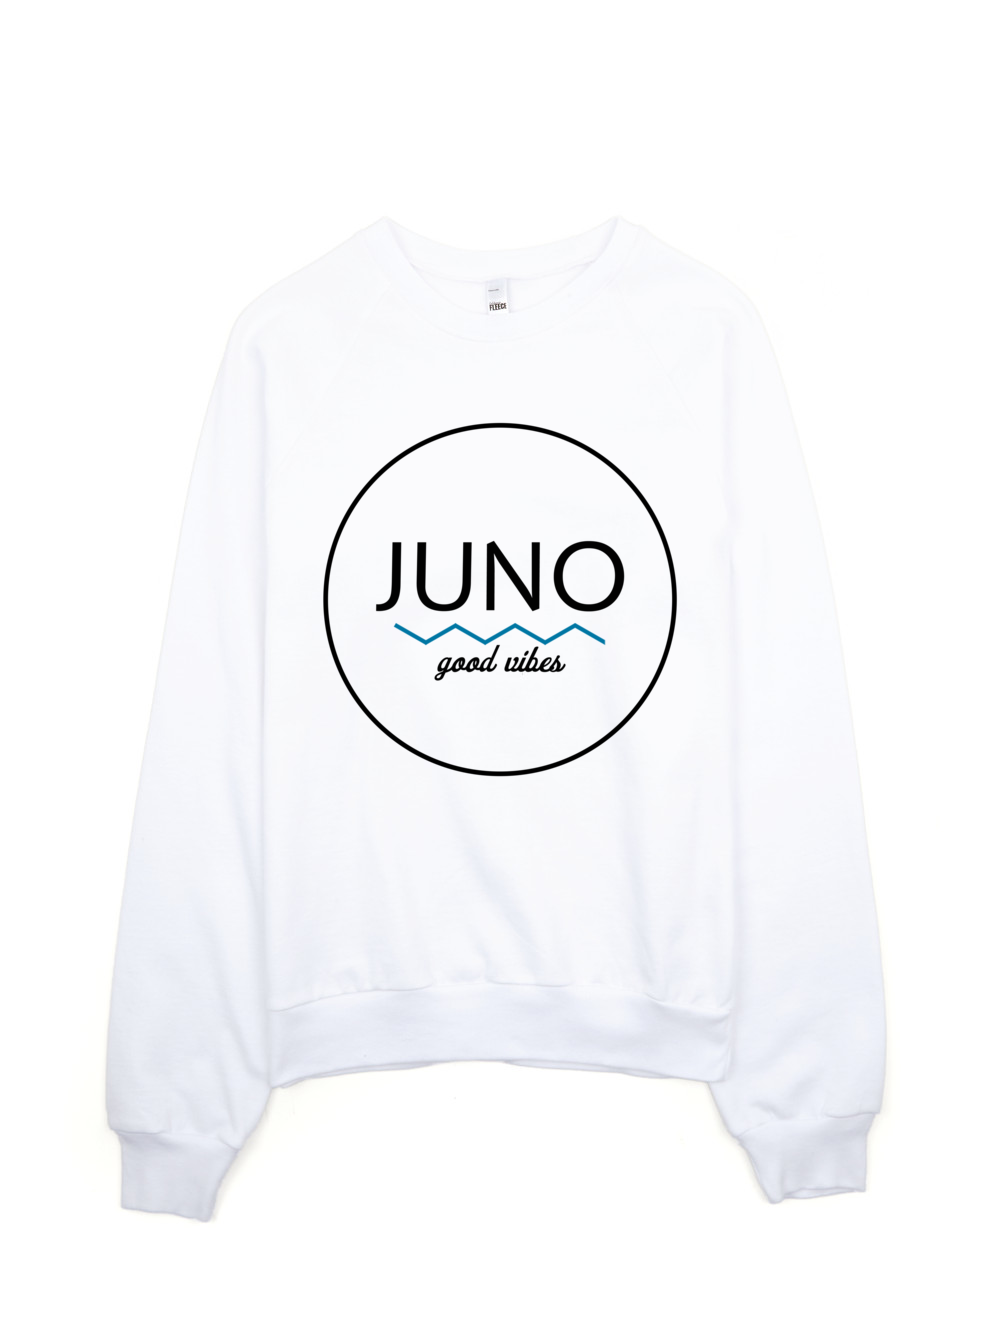 the simple waves crewneck features a wave design with juno in a black font as well as the saying good vibes on the bottom 100 california fleece cotton